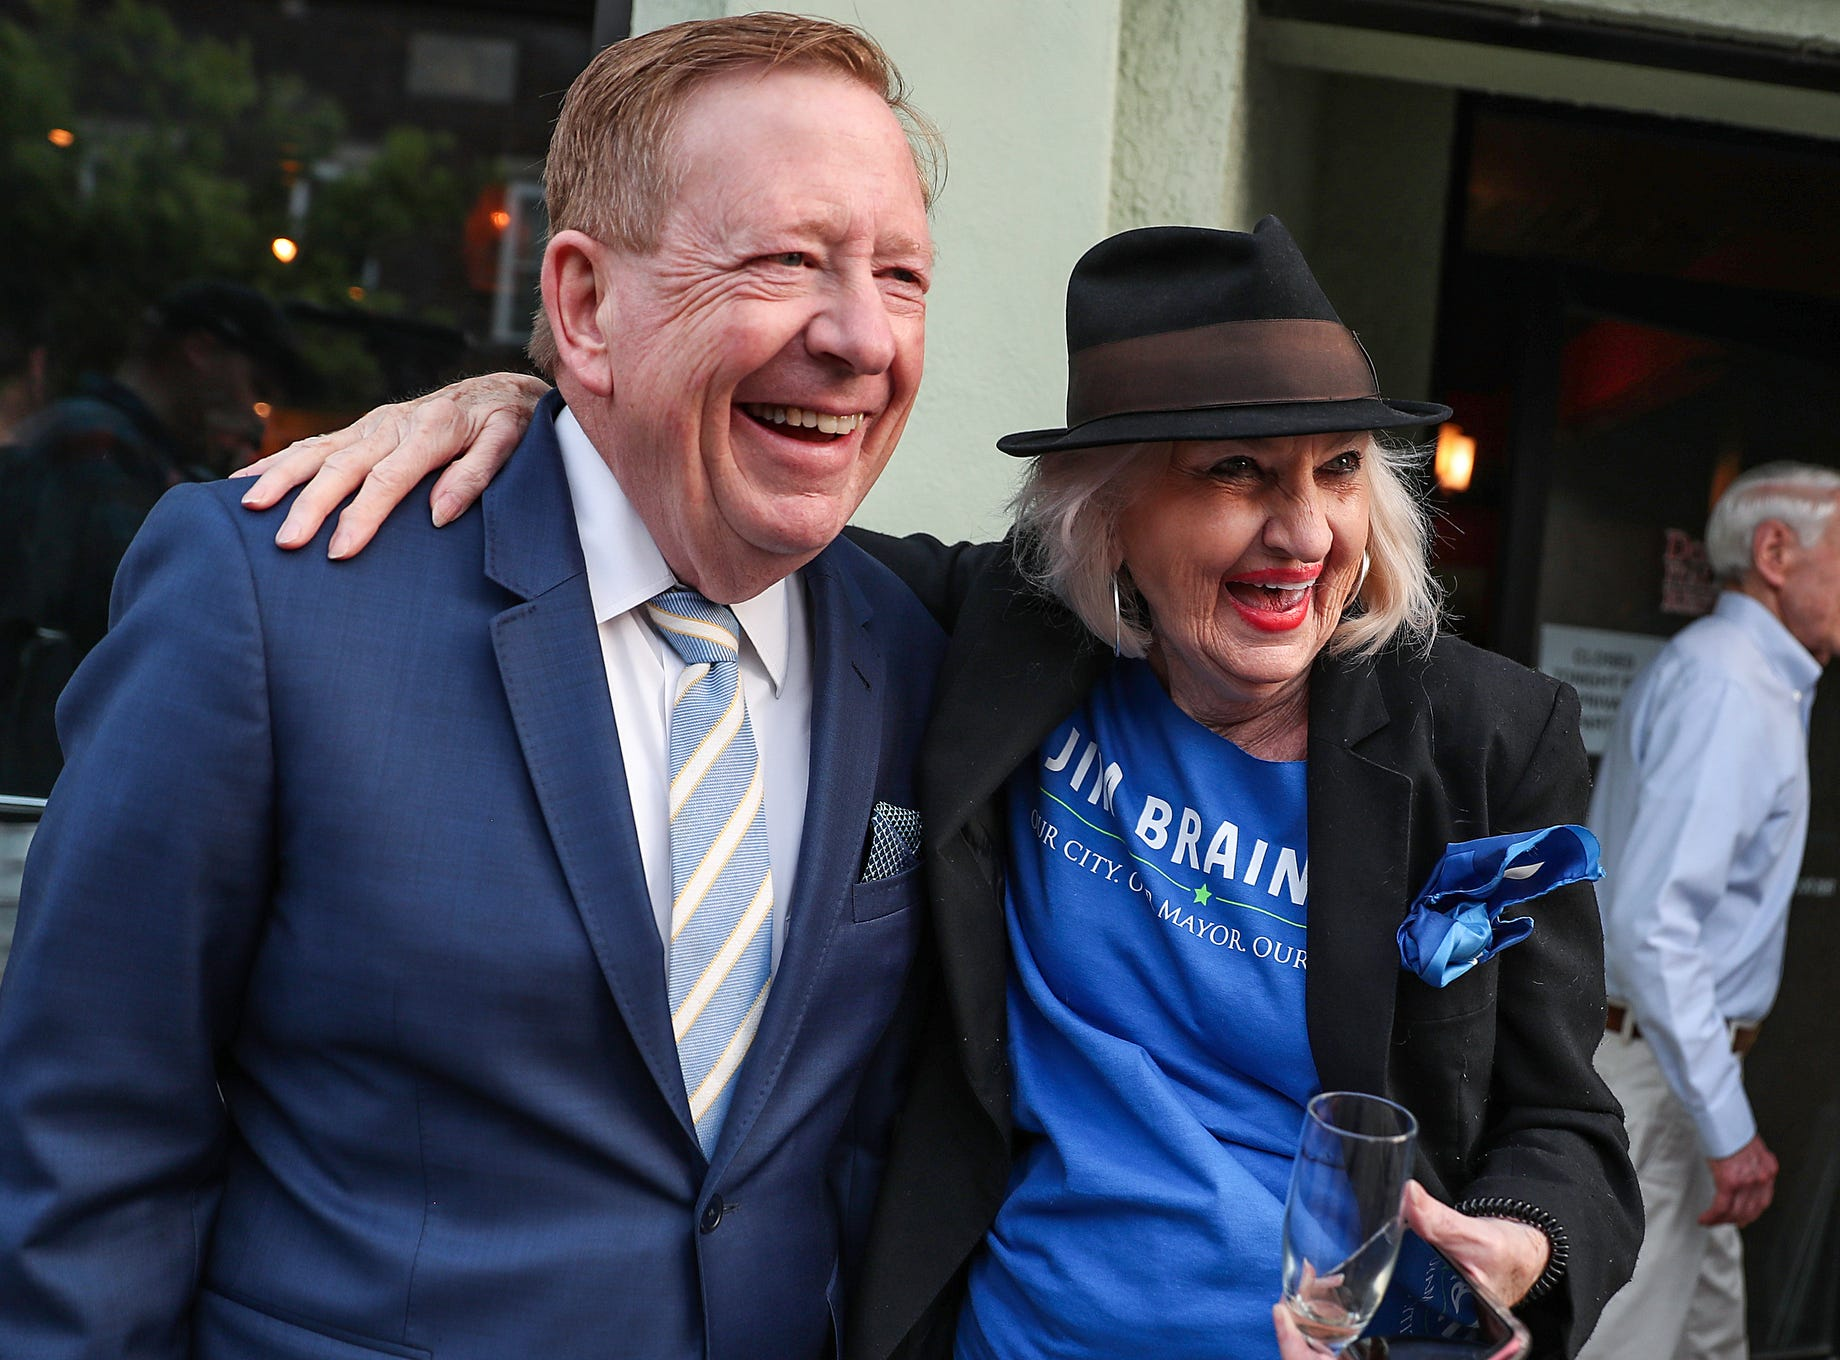 Marlene Simonds, 83, congratulates Jim Brainard as he clinches the Republican primary nomination for Carmel Mayor at DonatelloÕs Italian Restaurant in Carmel, Ind., Tuesday, May 7, 2019. This is Brainard's seventh term nomination in the Republican primary, defeating challenger Fred Glynn.